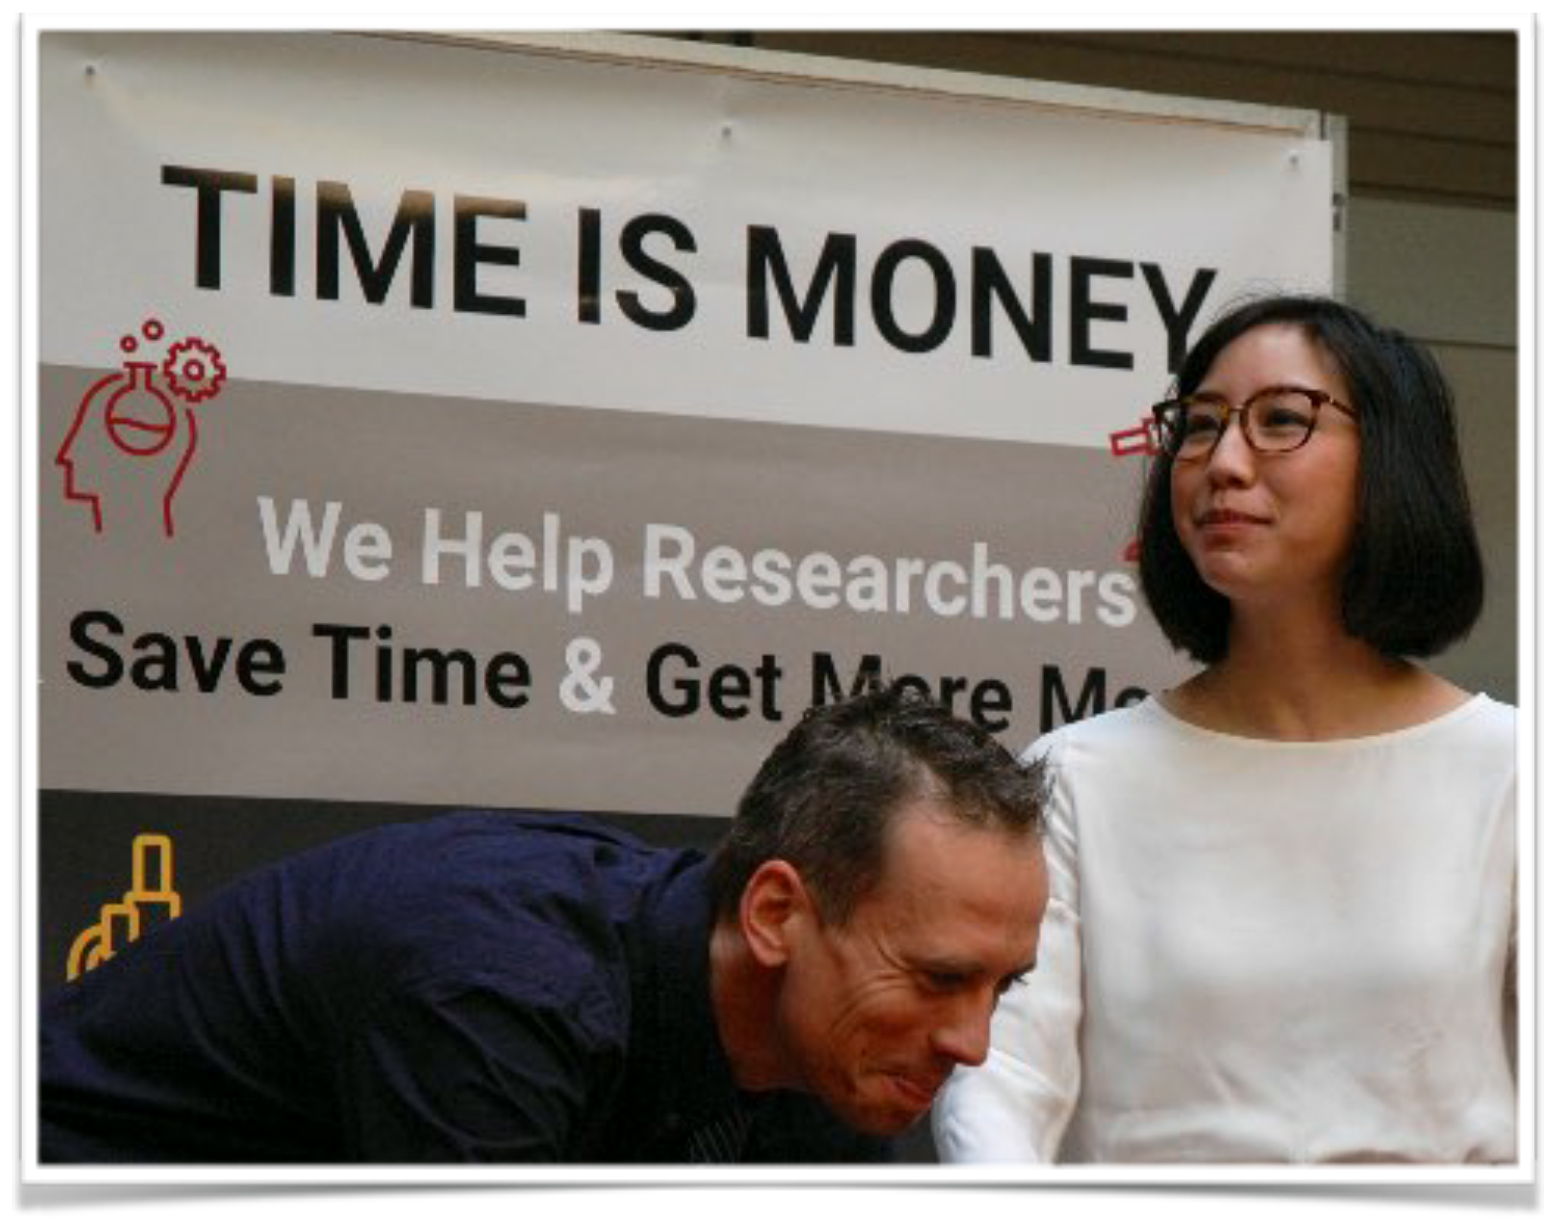 Employees presenting a poster with the title time is money.